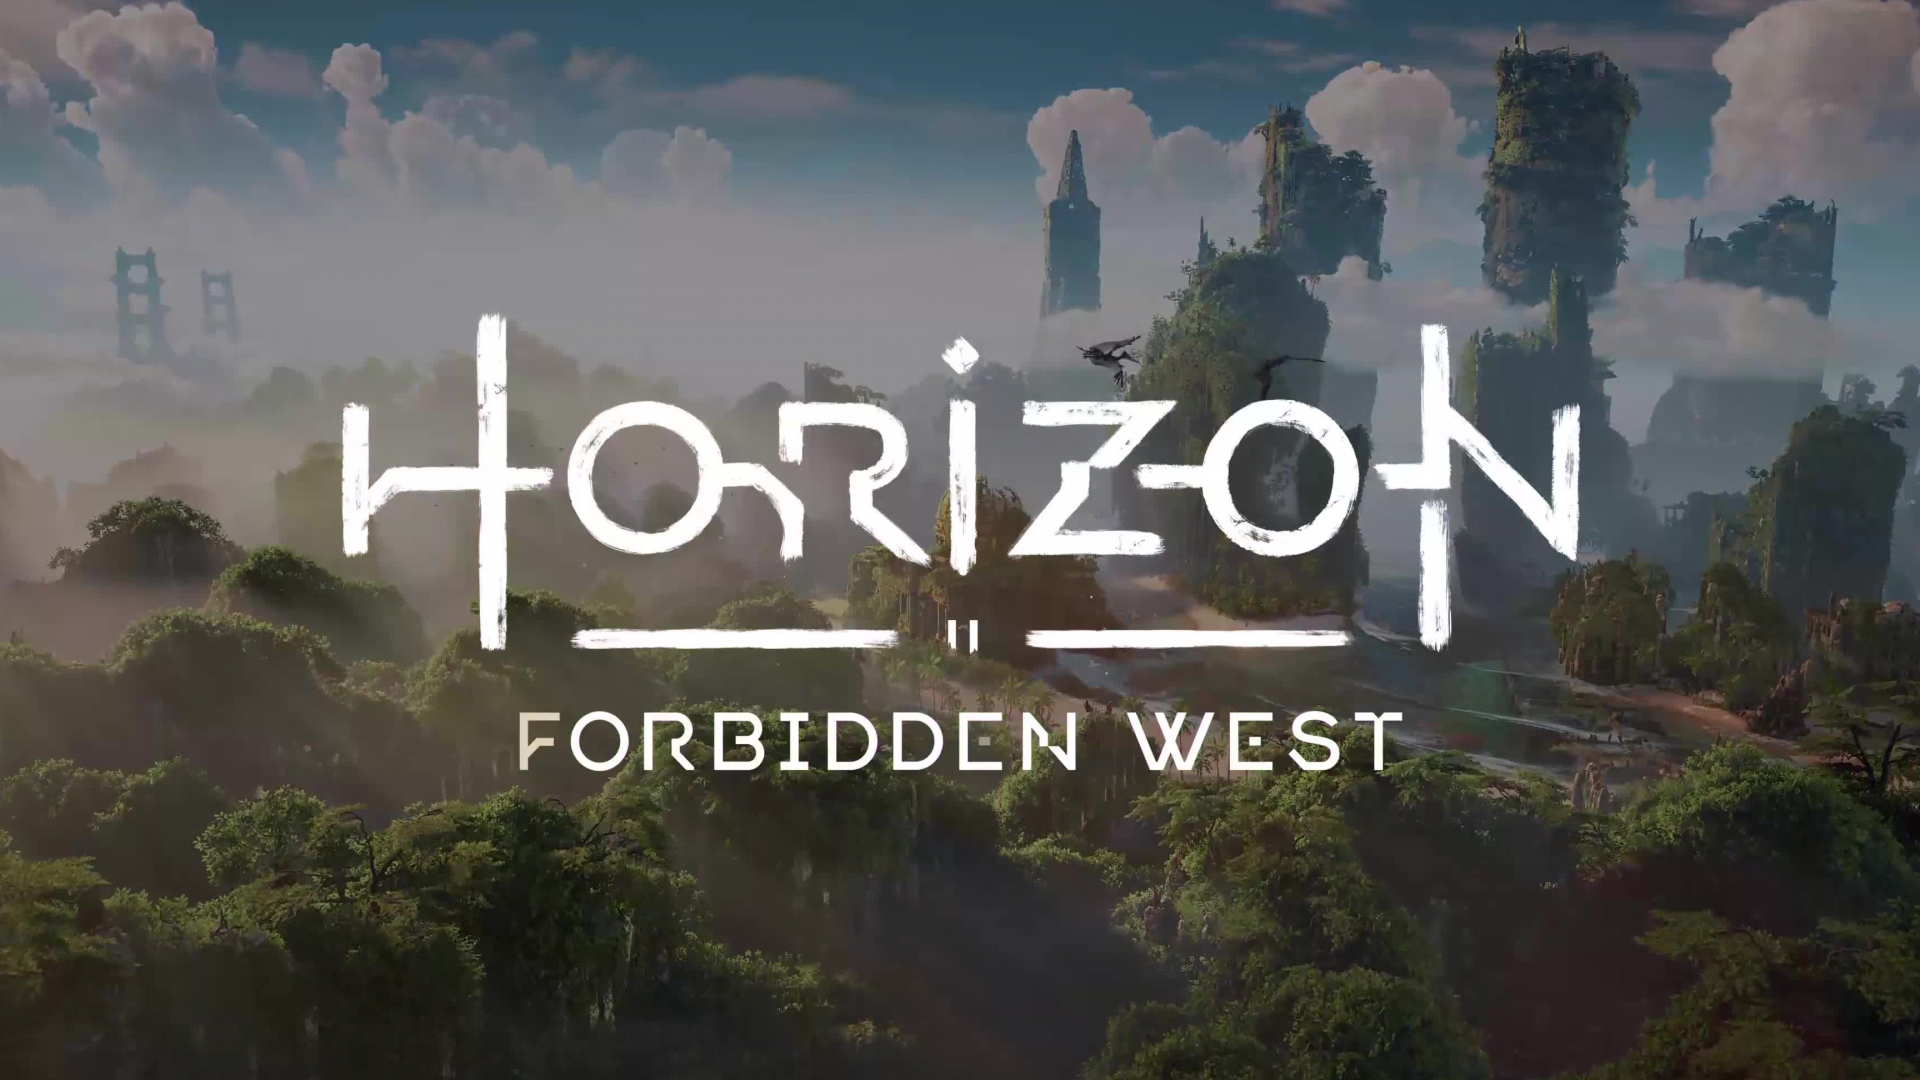 Horizon: Forbidden West, poster, PlayStation 5, PS5 (horizontal)